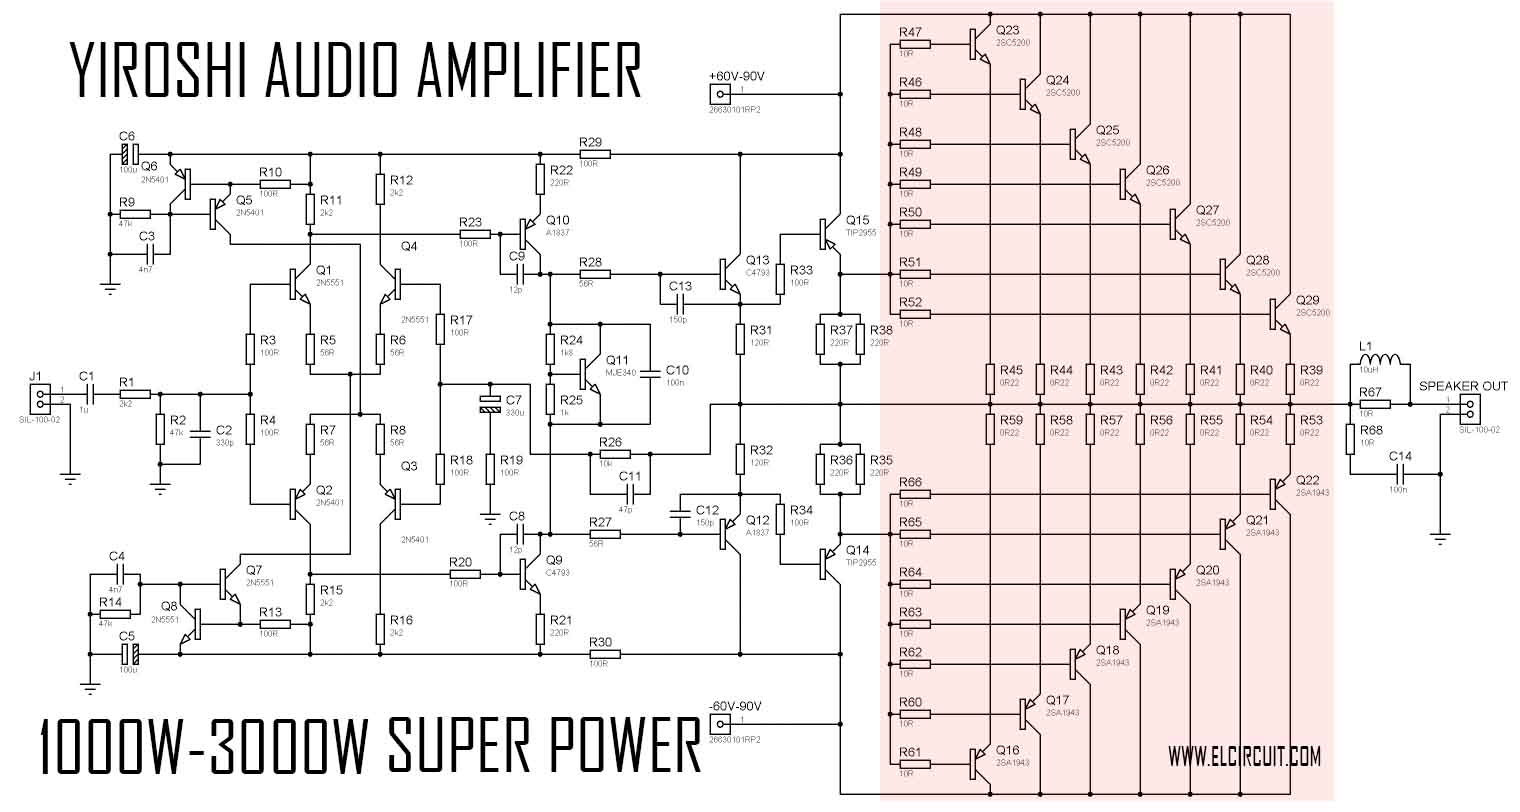 1000w Audio Amplifier Circuit Diagrams - Schematic Wiring Diagram